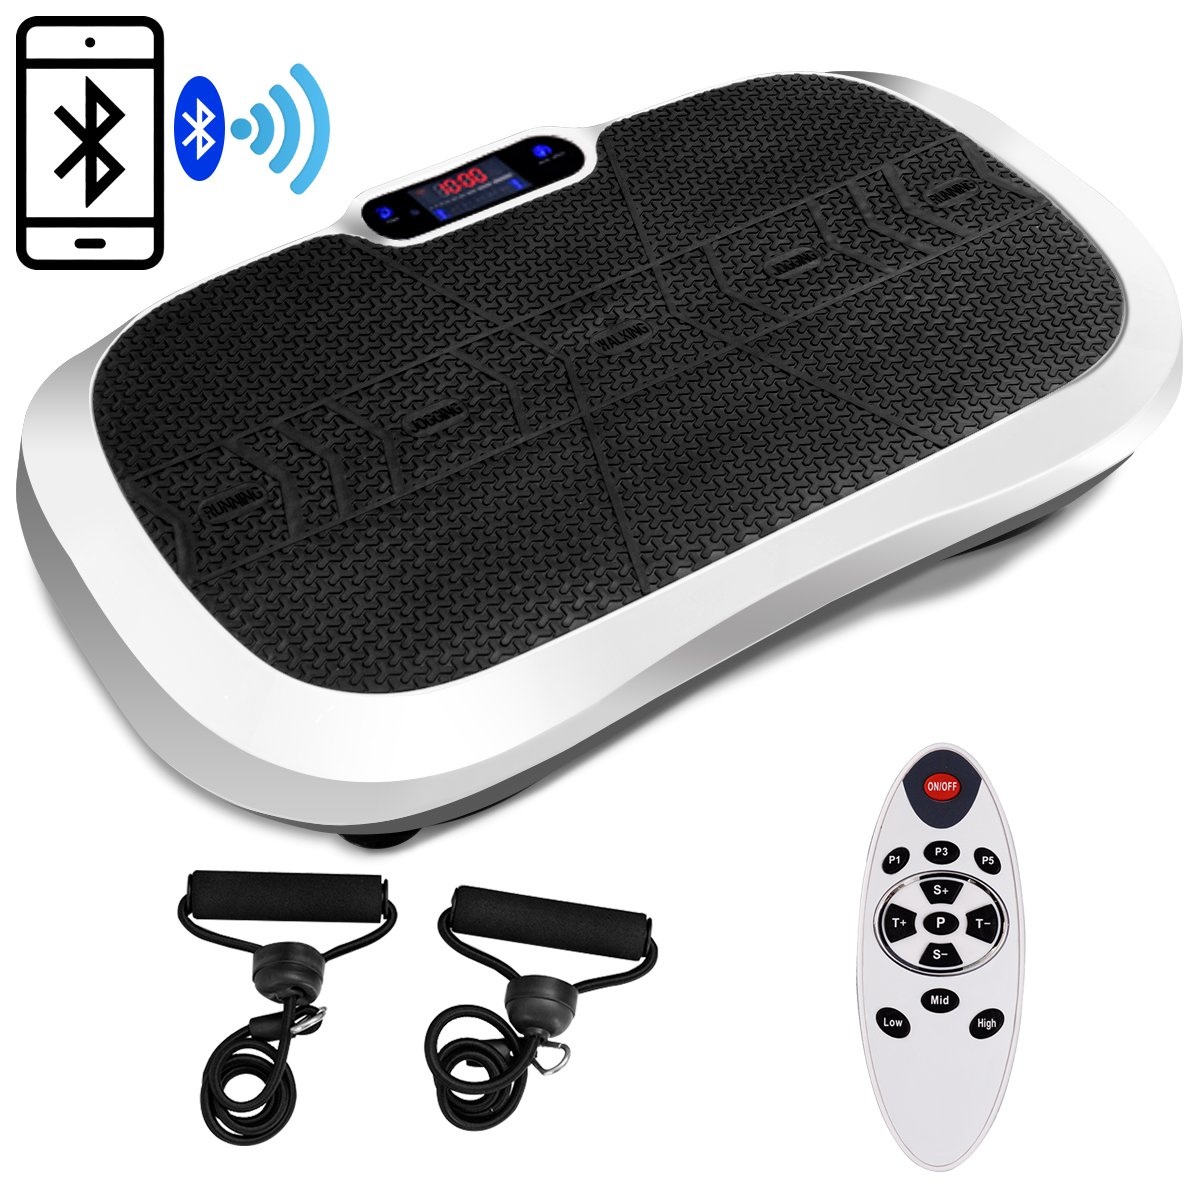 Goplus Fitness Vibration Machine Ultrathin Power Plate Full Body Shape Exercise Machine with Bluetooth Remote Control & Resistance Bands Vibration Workout Trainer (White) by Goplus (Image #1)